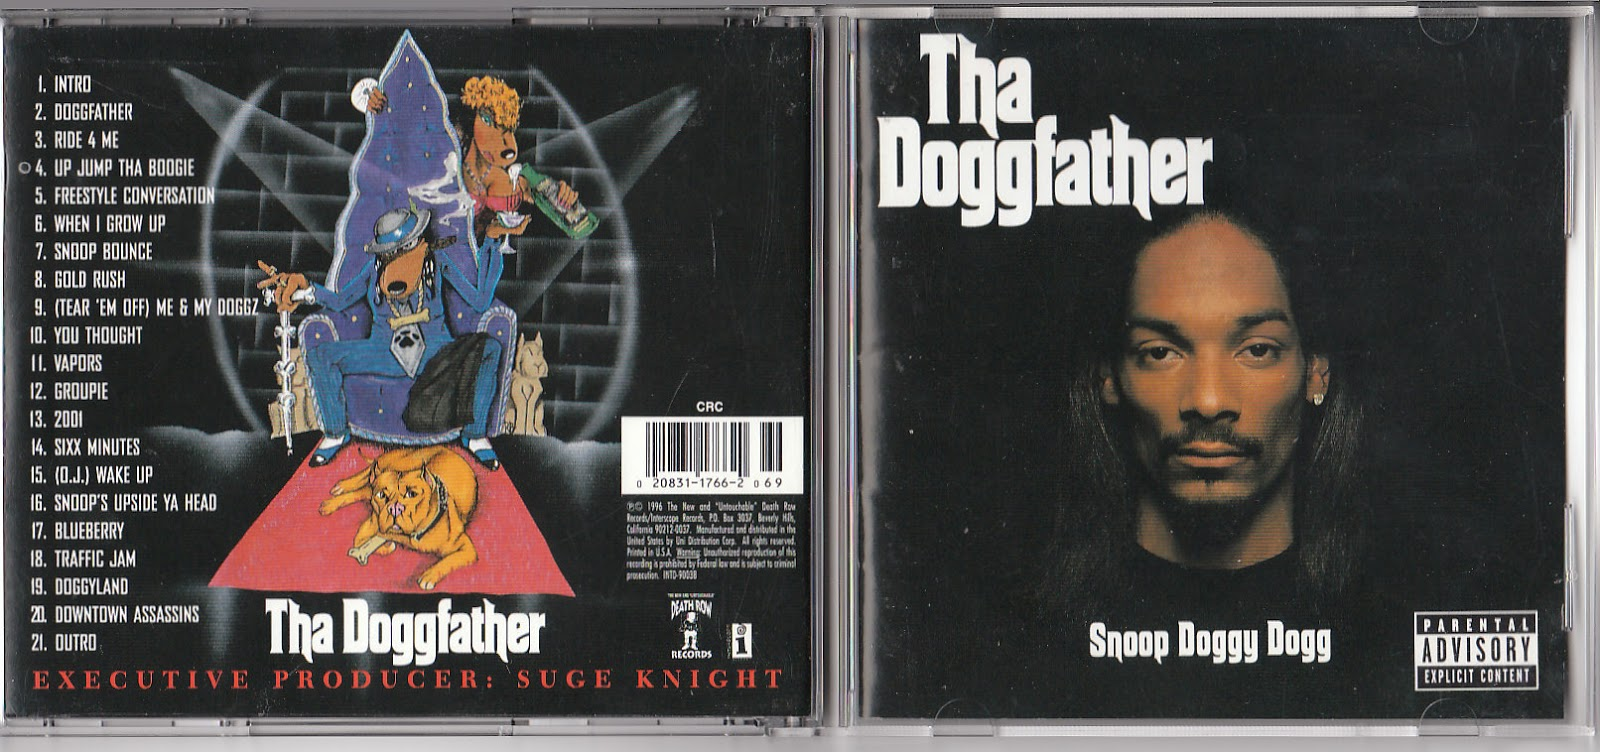 Collection '45 [_: Snoop Doggy Dogg - Tha Doggfather - 1996 (Long